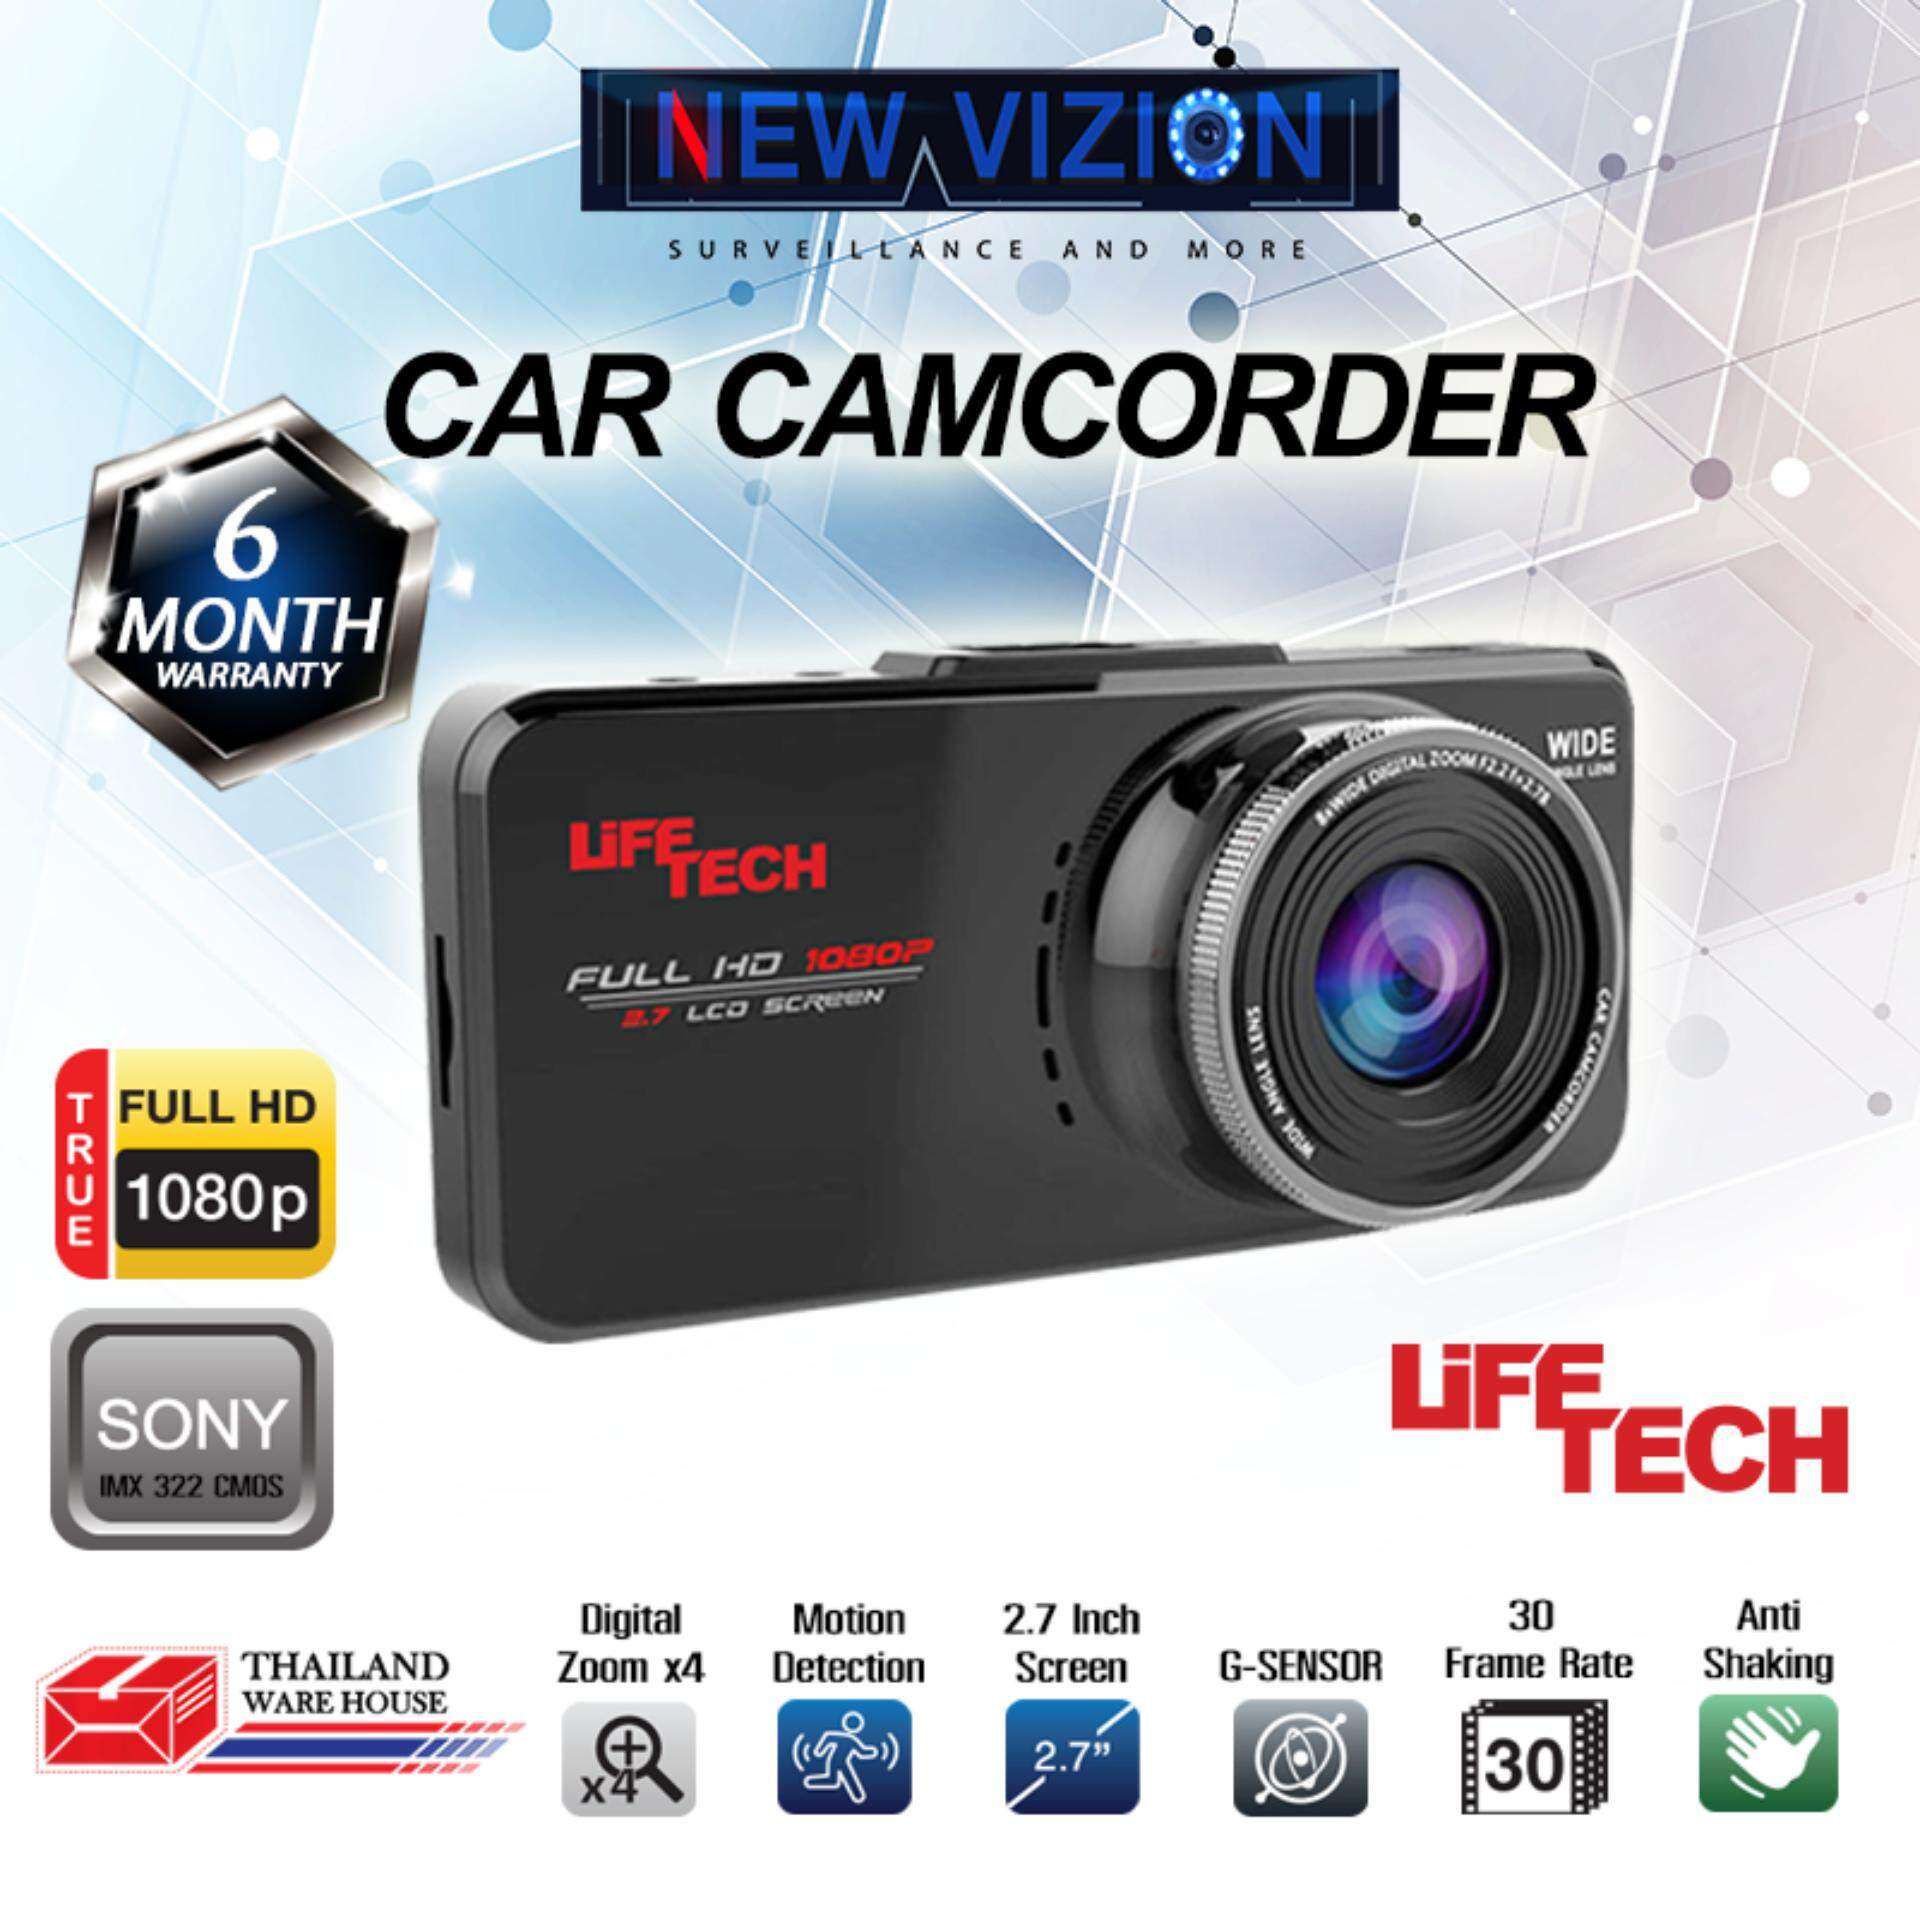 LifeTech 1080p Full HD High Definition Car Camcorder / 2.7LCD Screen / Multi language / SONY IMX322 Chip